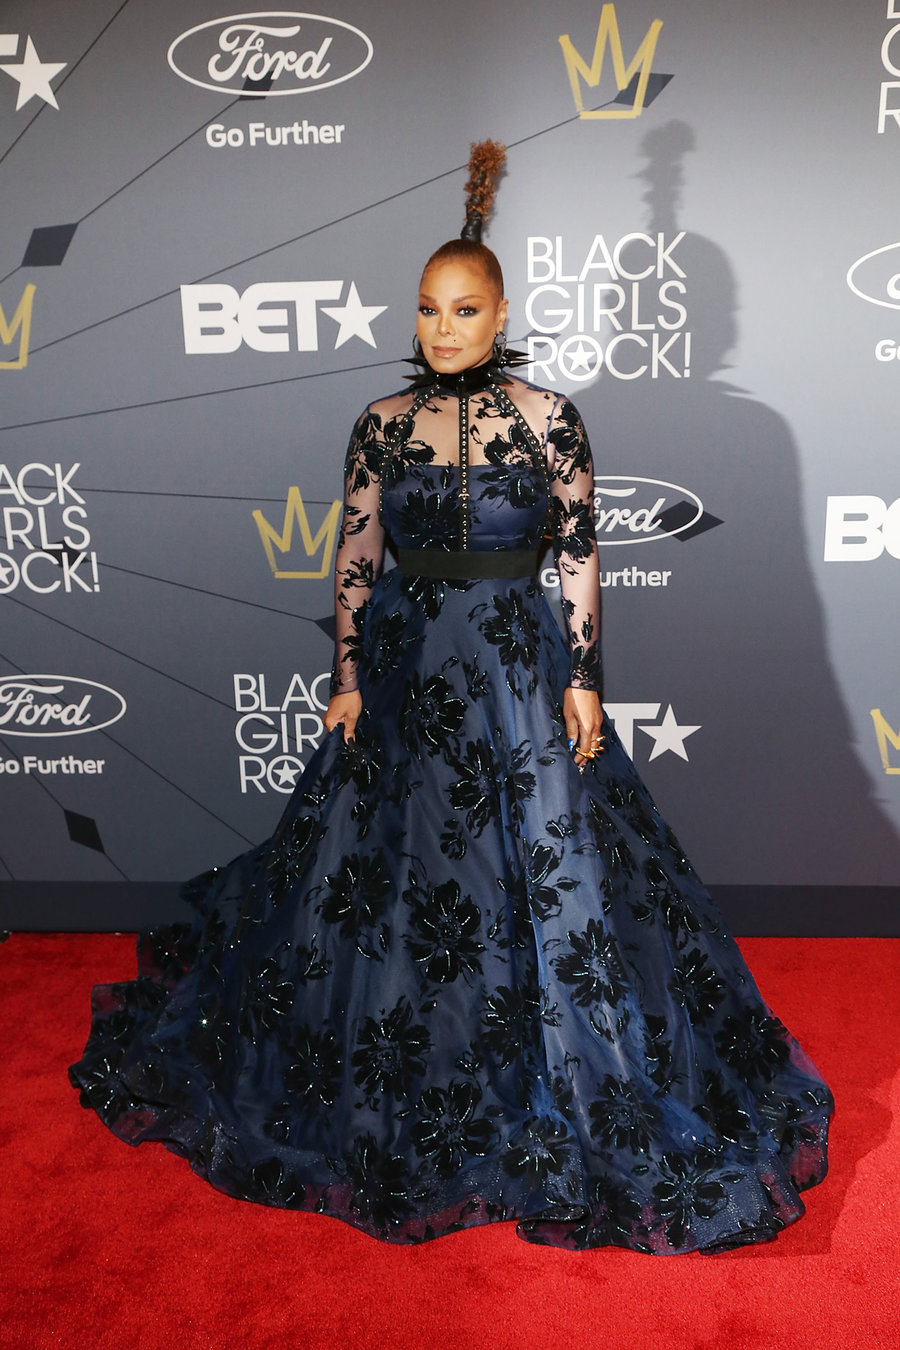 janet-jackson-black-girls-rock-red-carpet-2018-billboard-1240